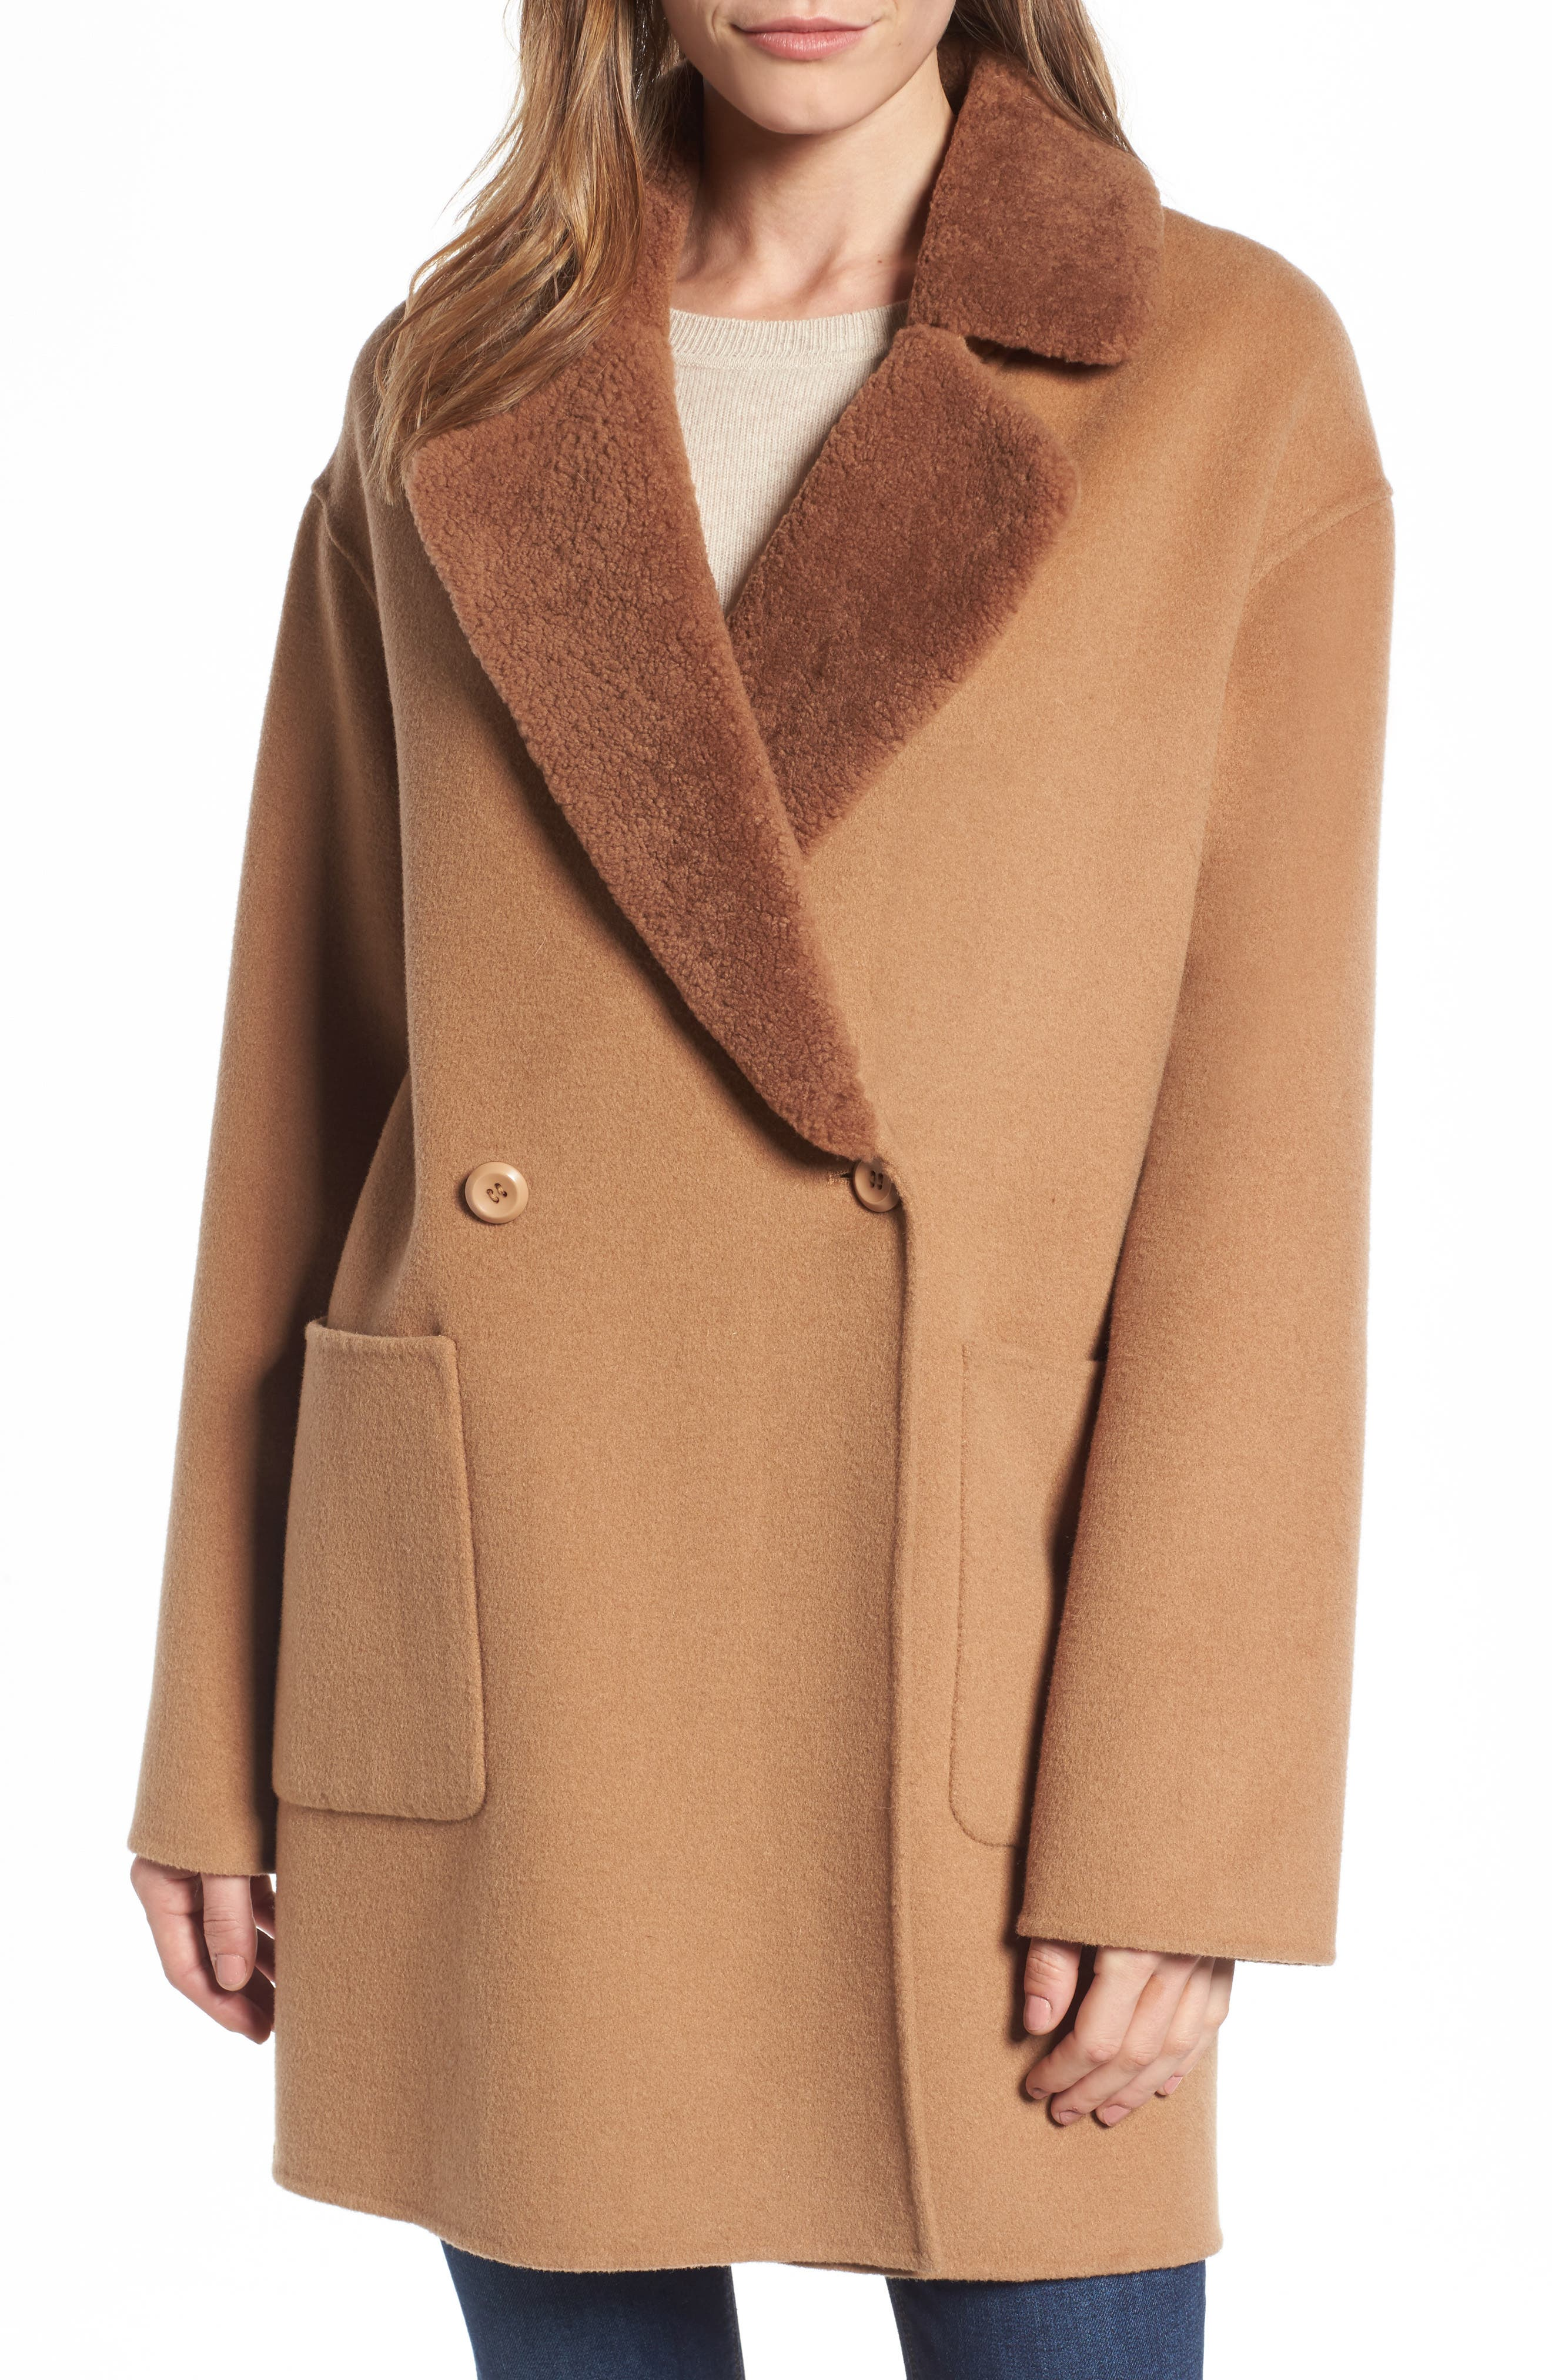 Trina Turk Dawn Genuine Shearling Collar Double Face Coat (Regular & Petite)